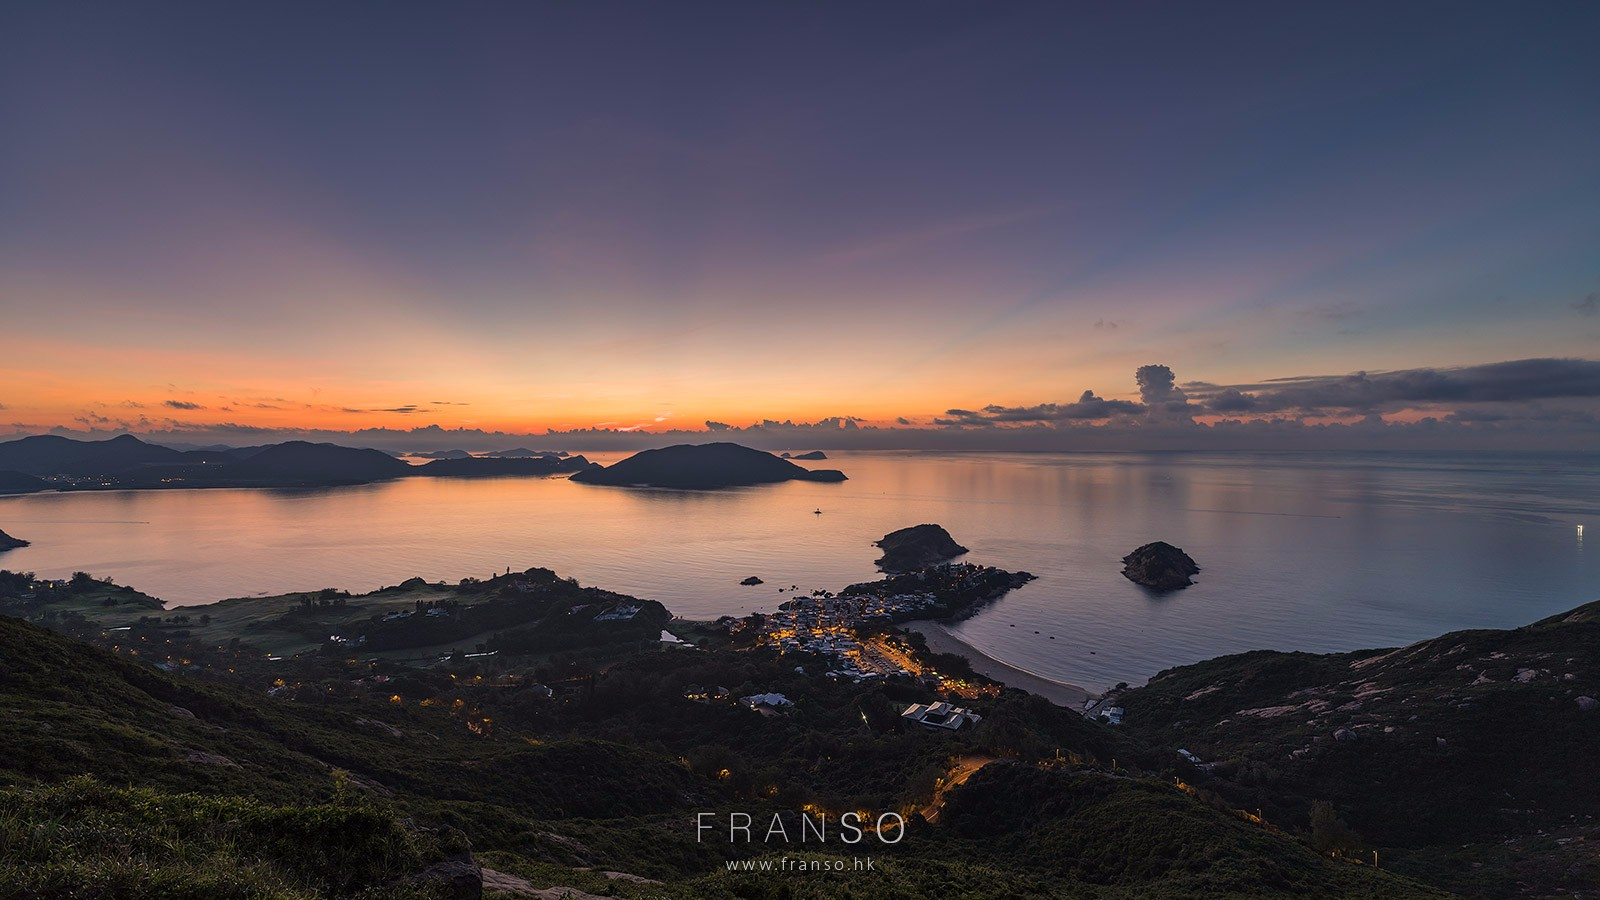 Landscape | Hong Kong | Before sunrise  |